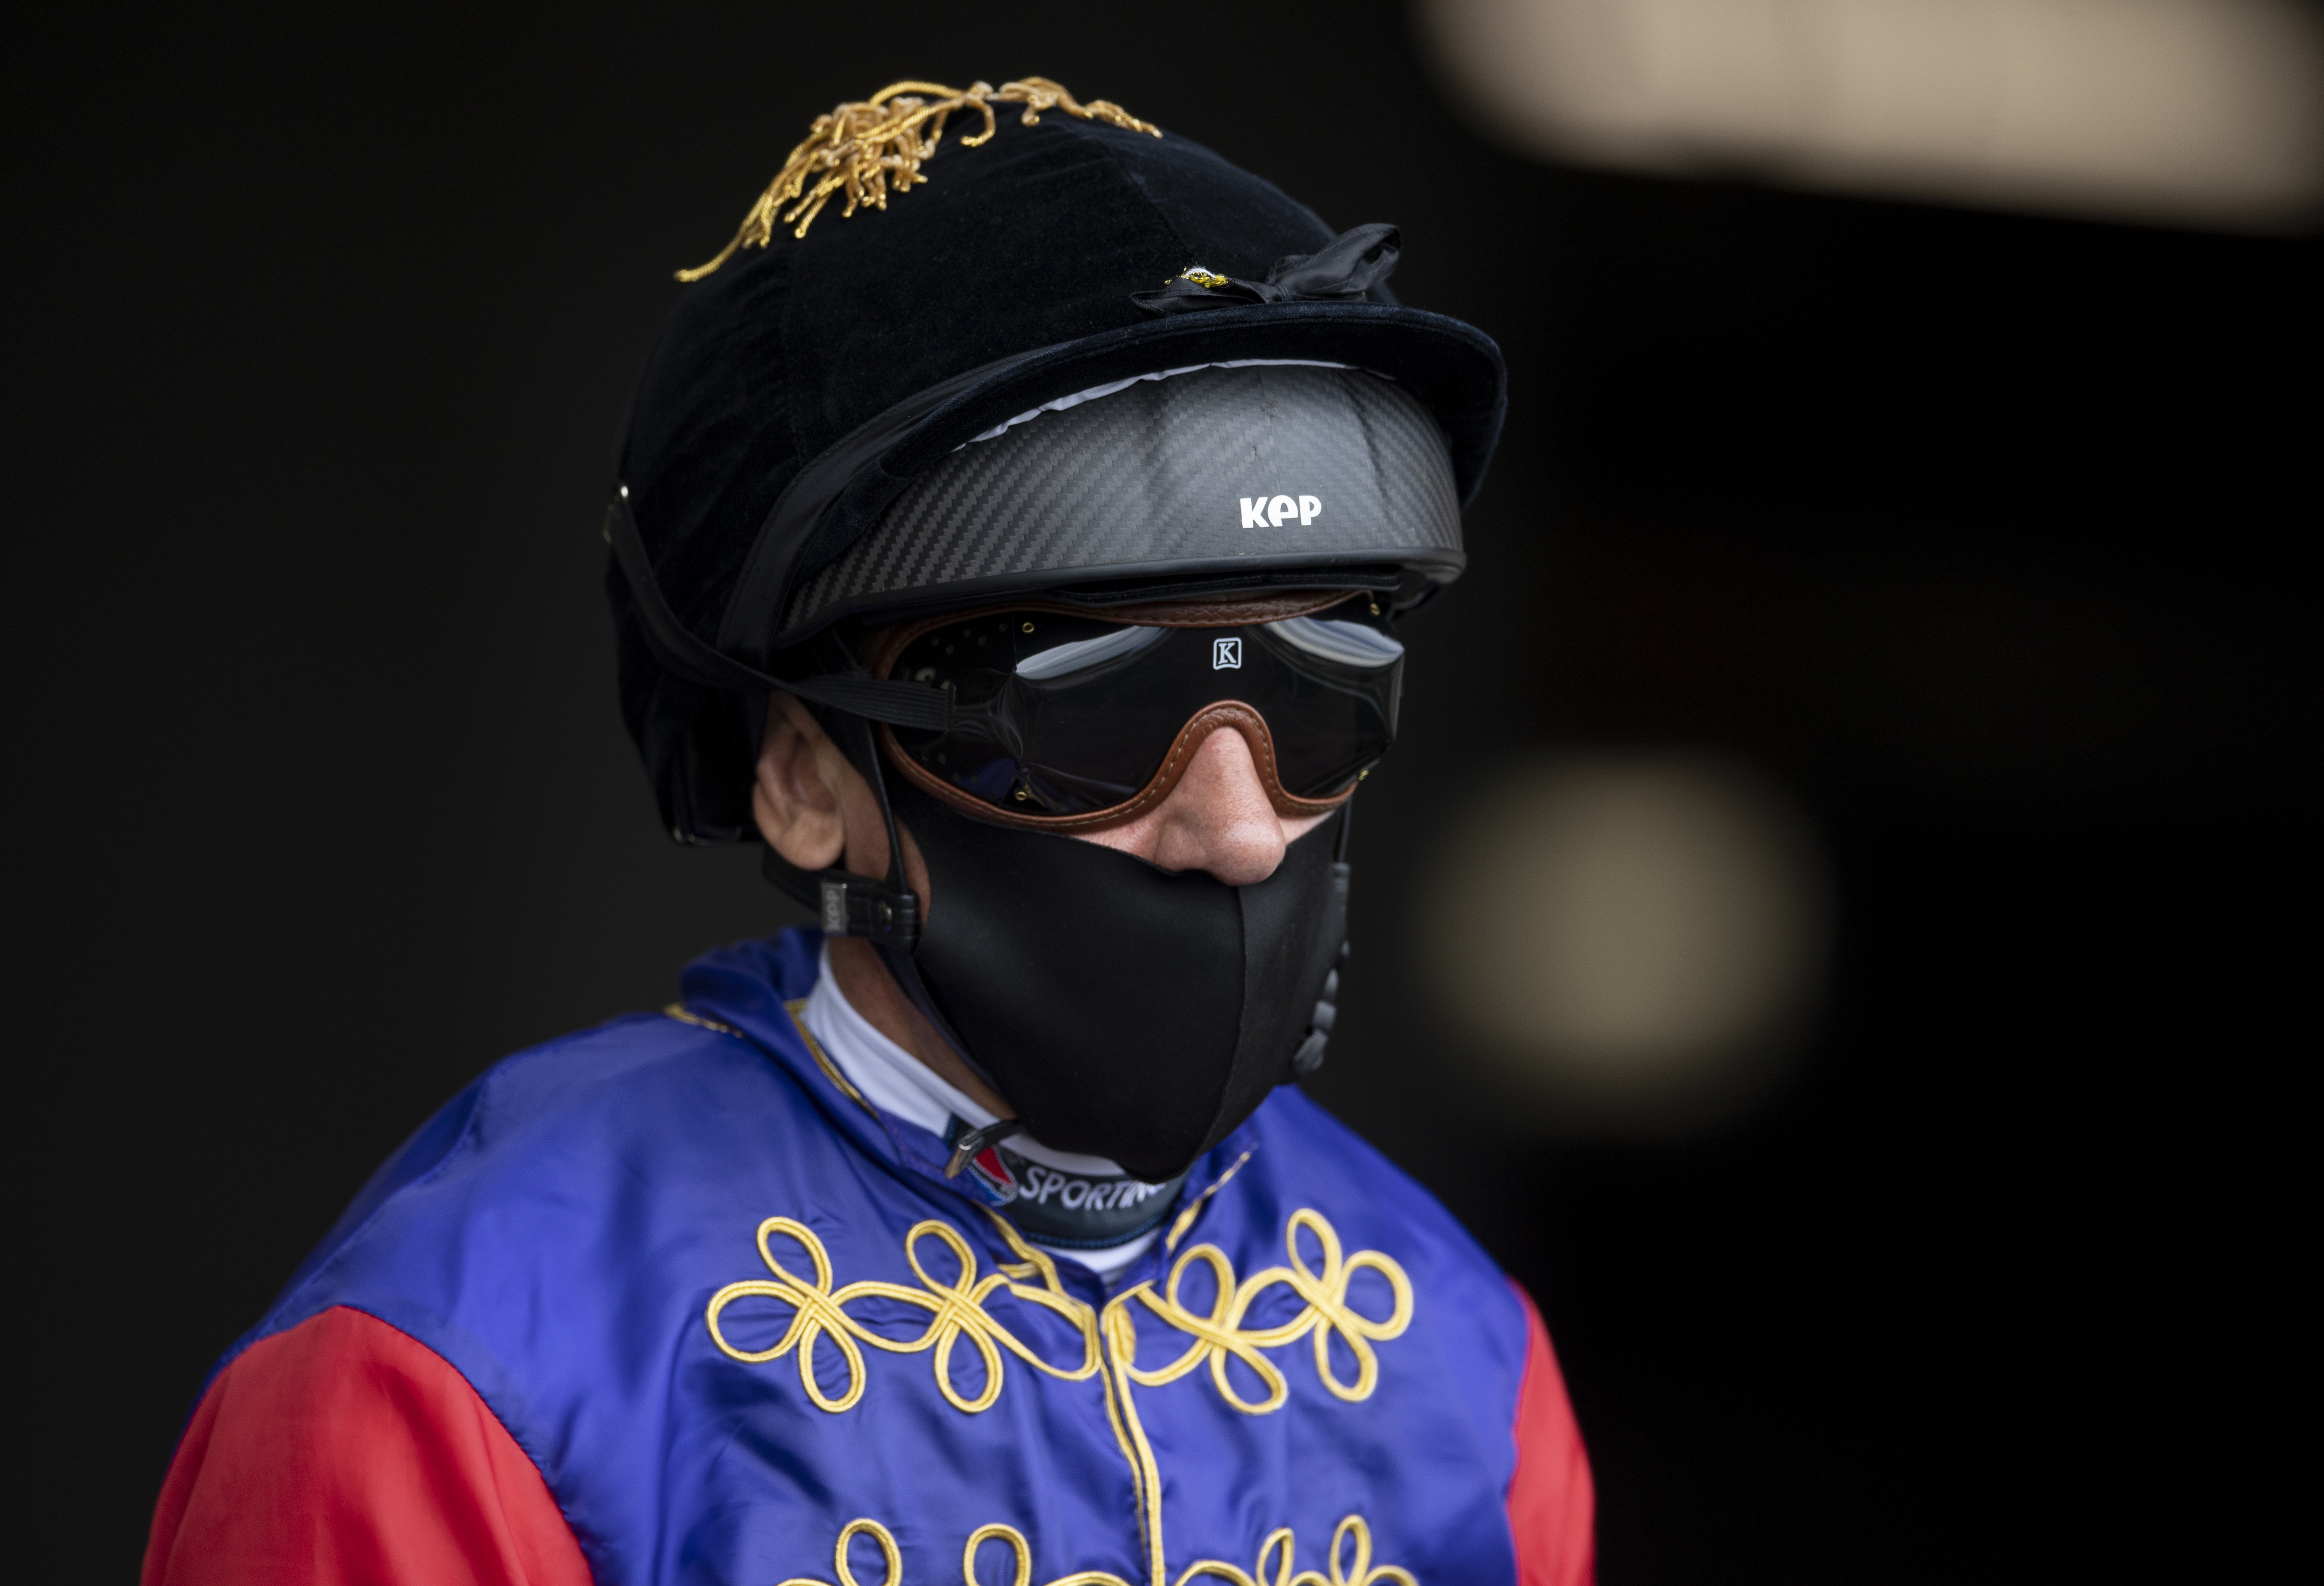 ASCOT, ENGLAND - JUNE 17: Frankie Dettori in The Queens silks prior to the Hampton Court Stakes during Day 2 of Royal Ascot at Ascot Racecourse on June 17, 2020 in Ascot, England. (Photo by Edward Whitaker/Pool via Getty Images)